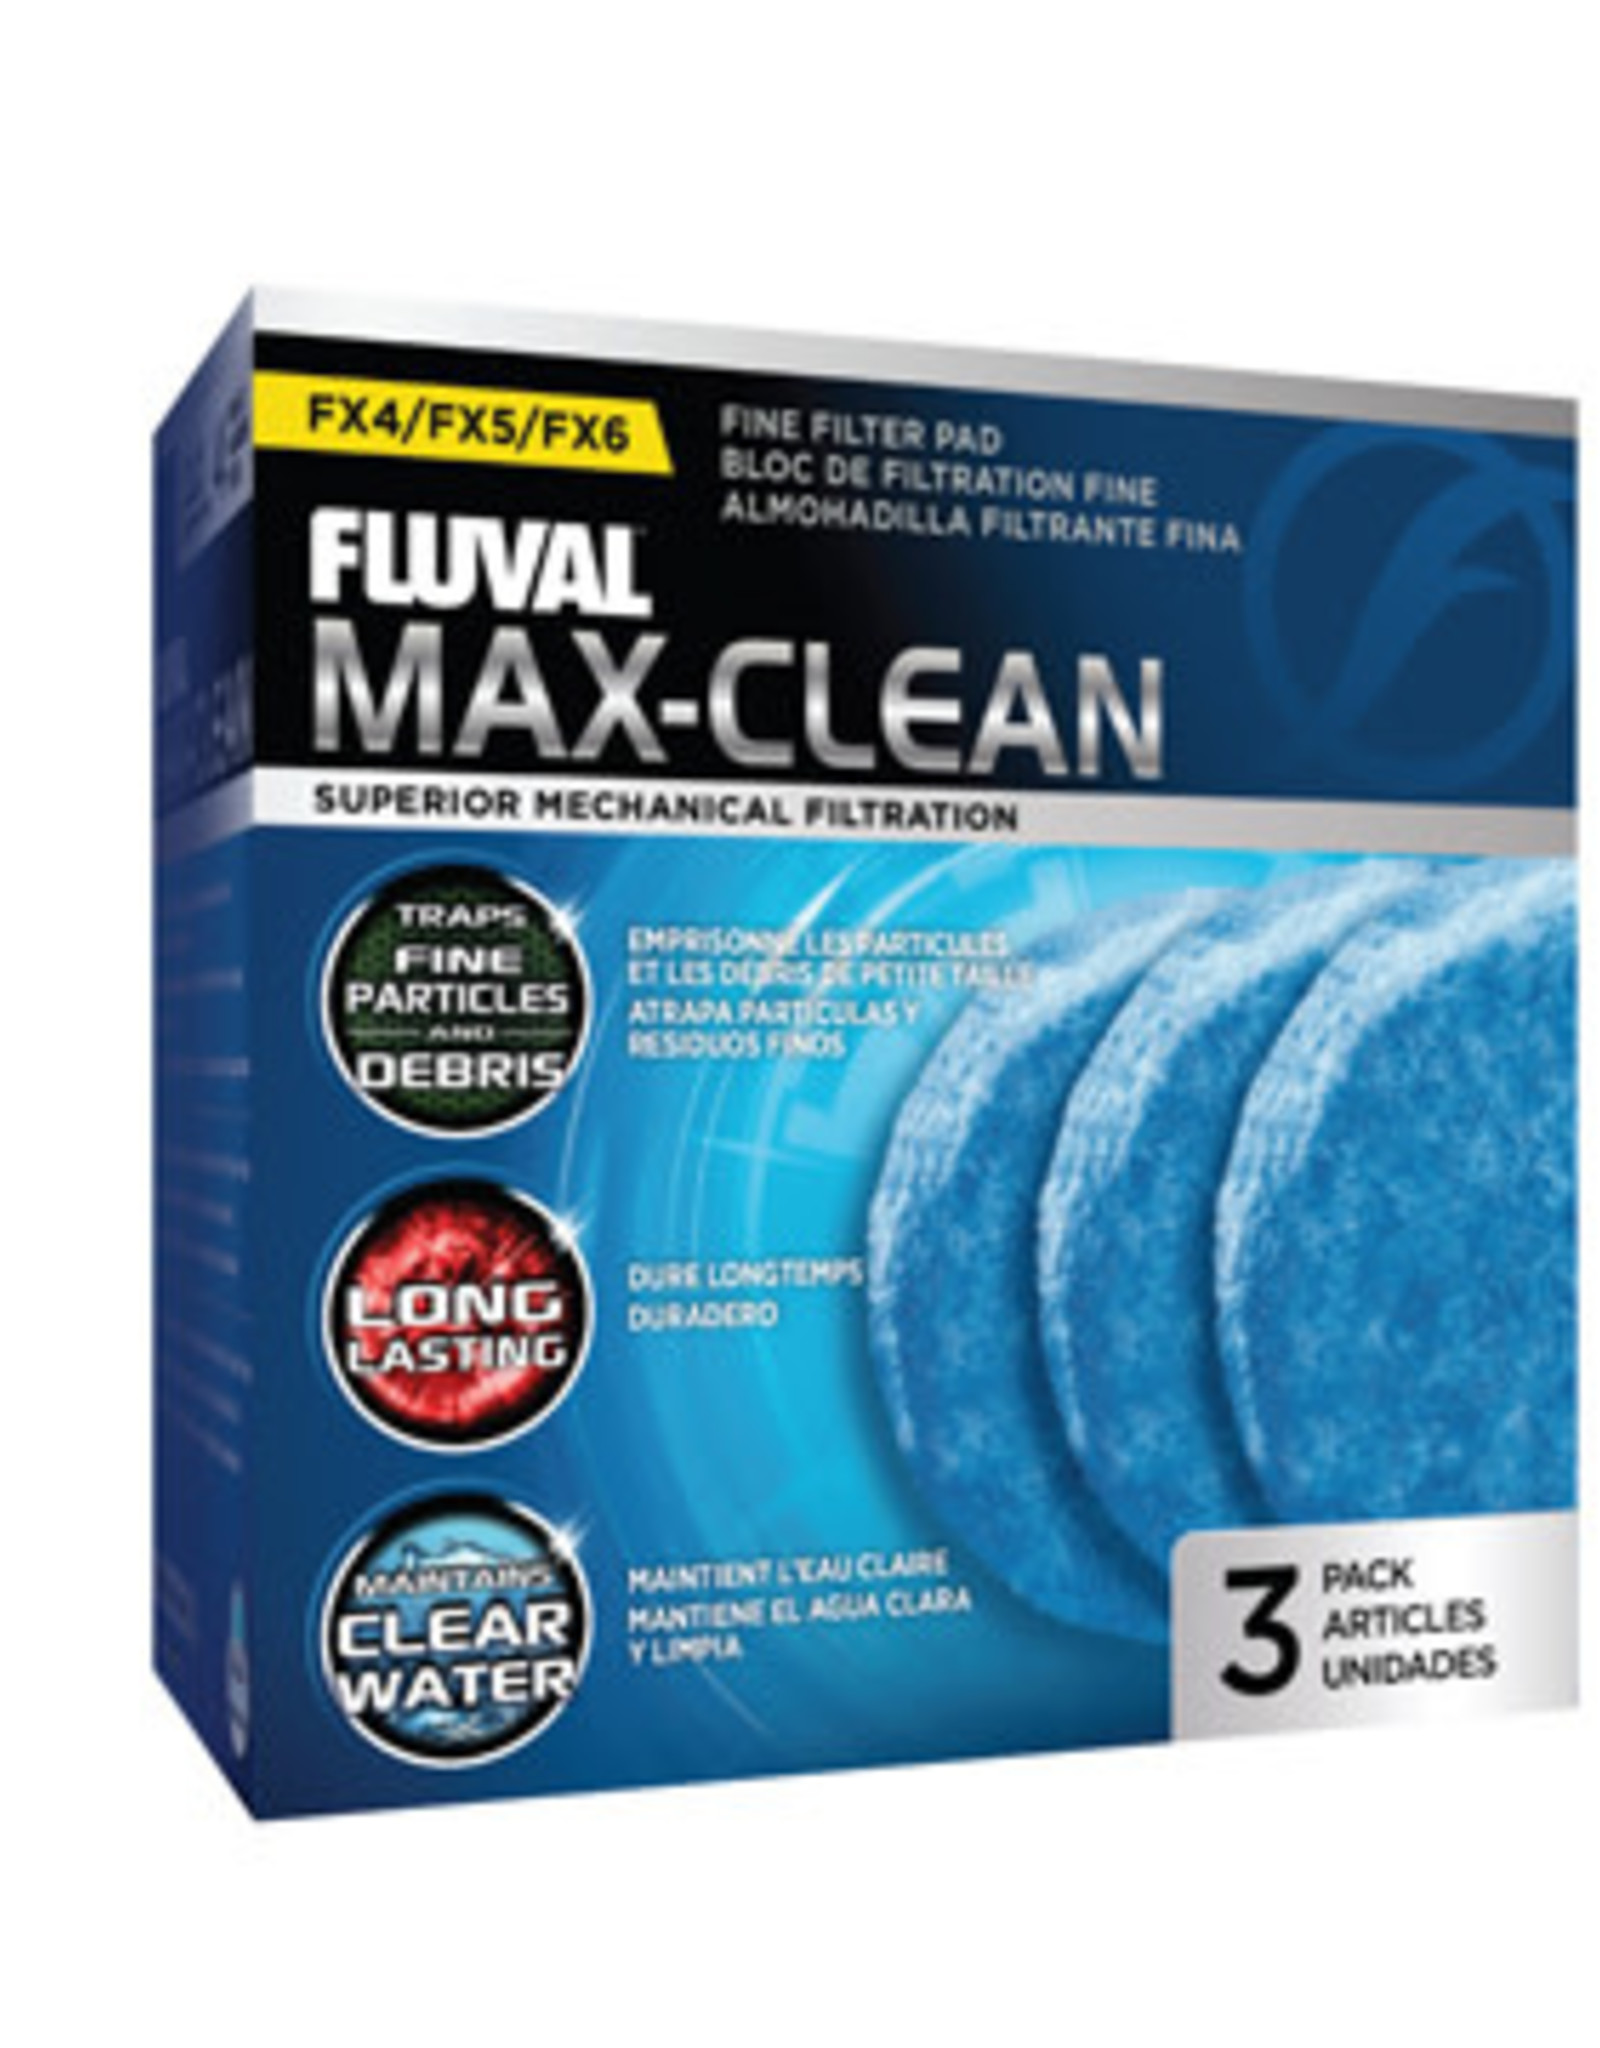 Fluval Max-Clean Fine Filter Pads - 3 pack